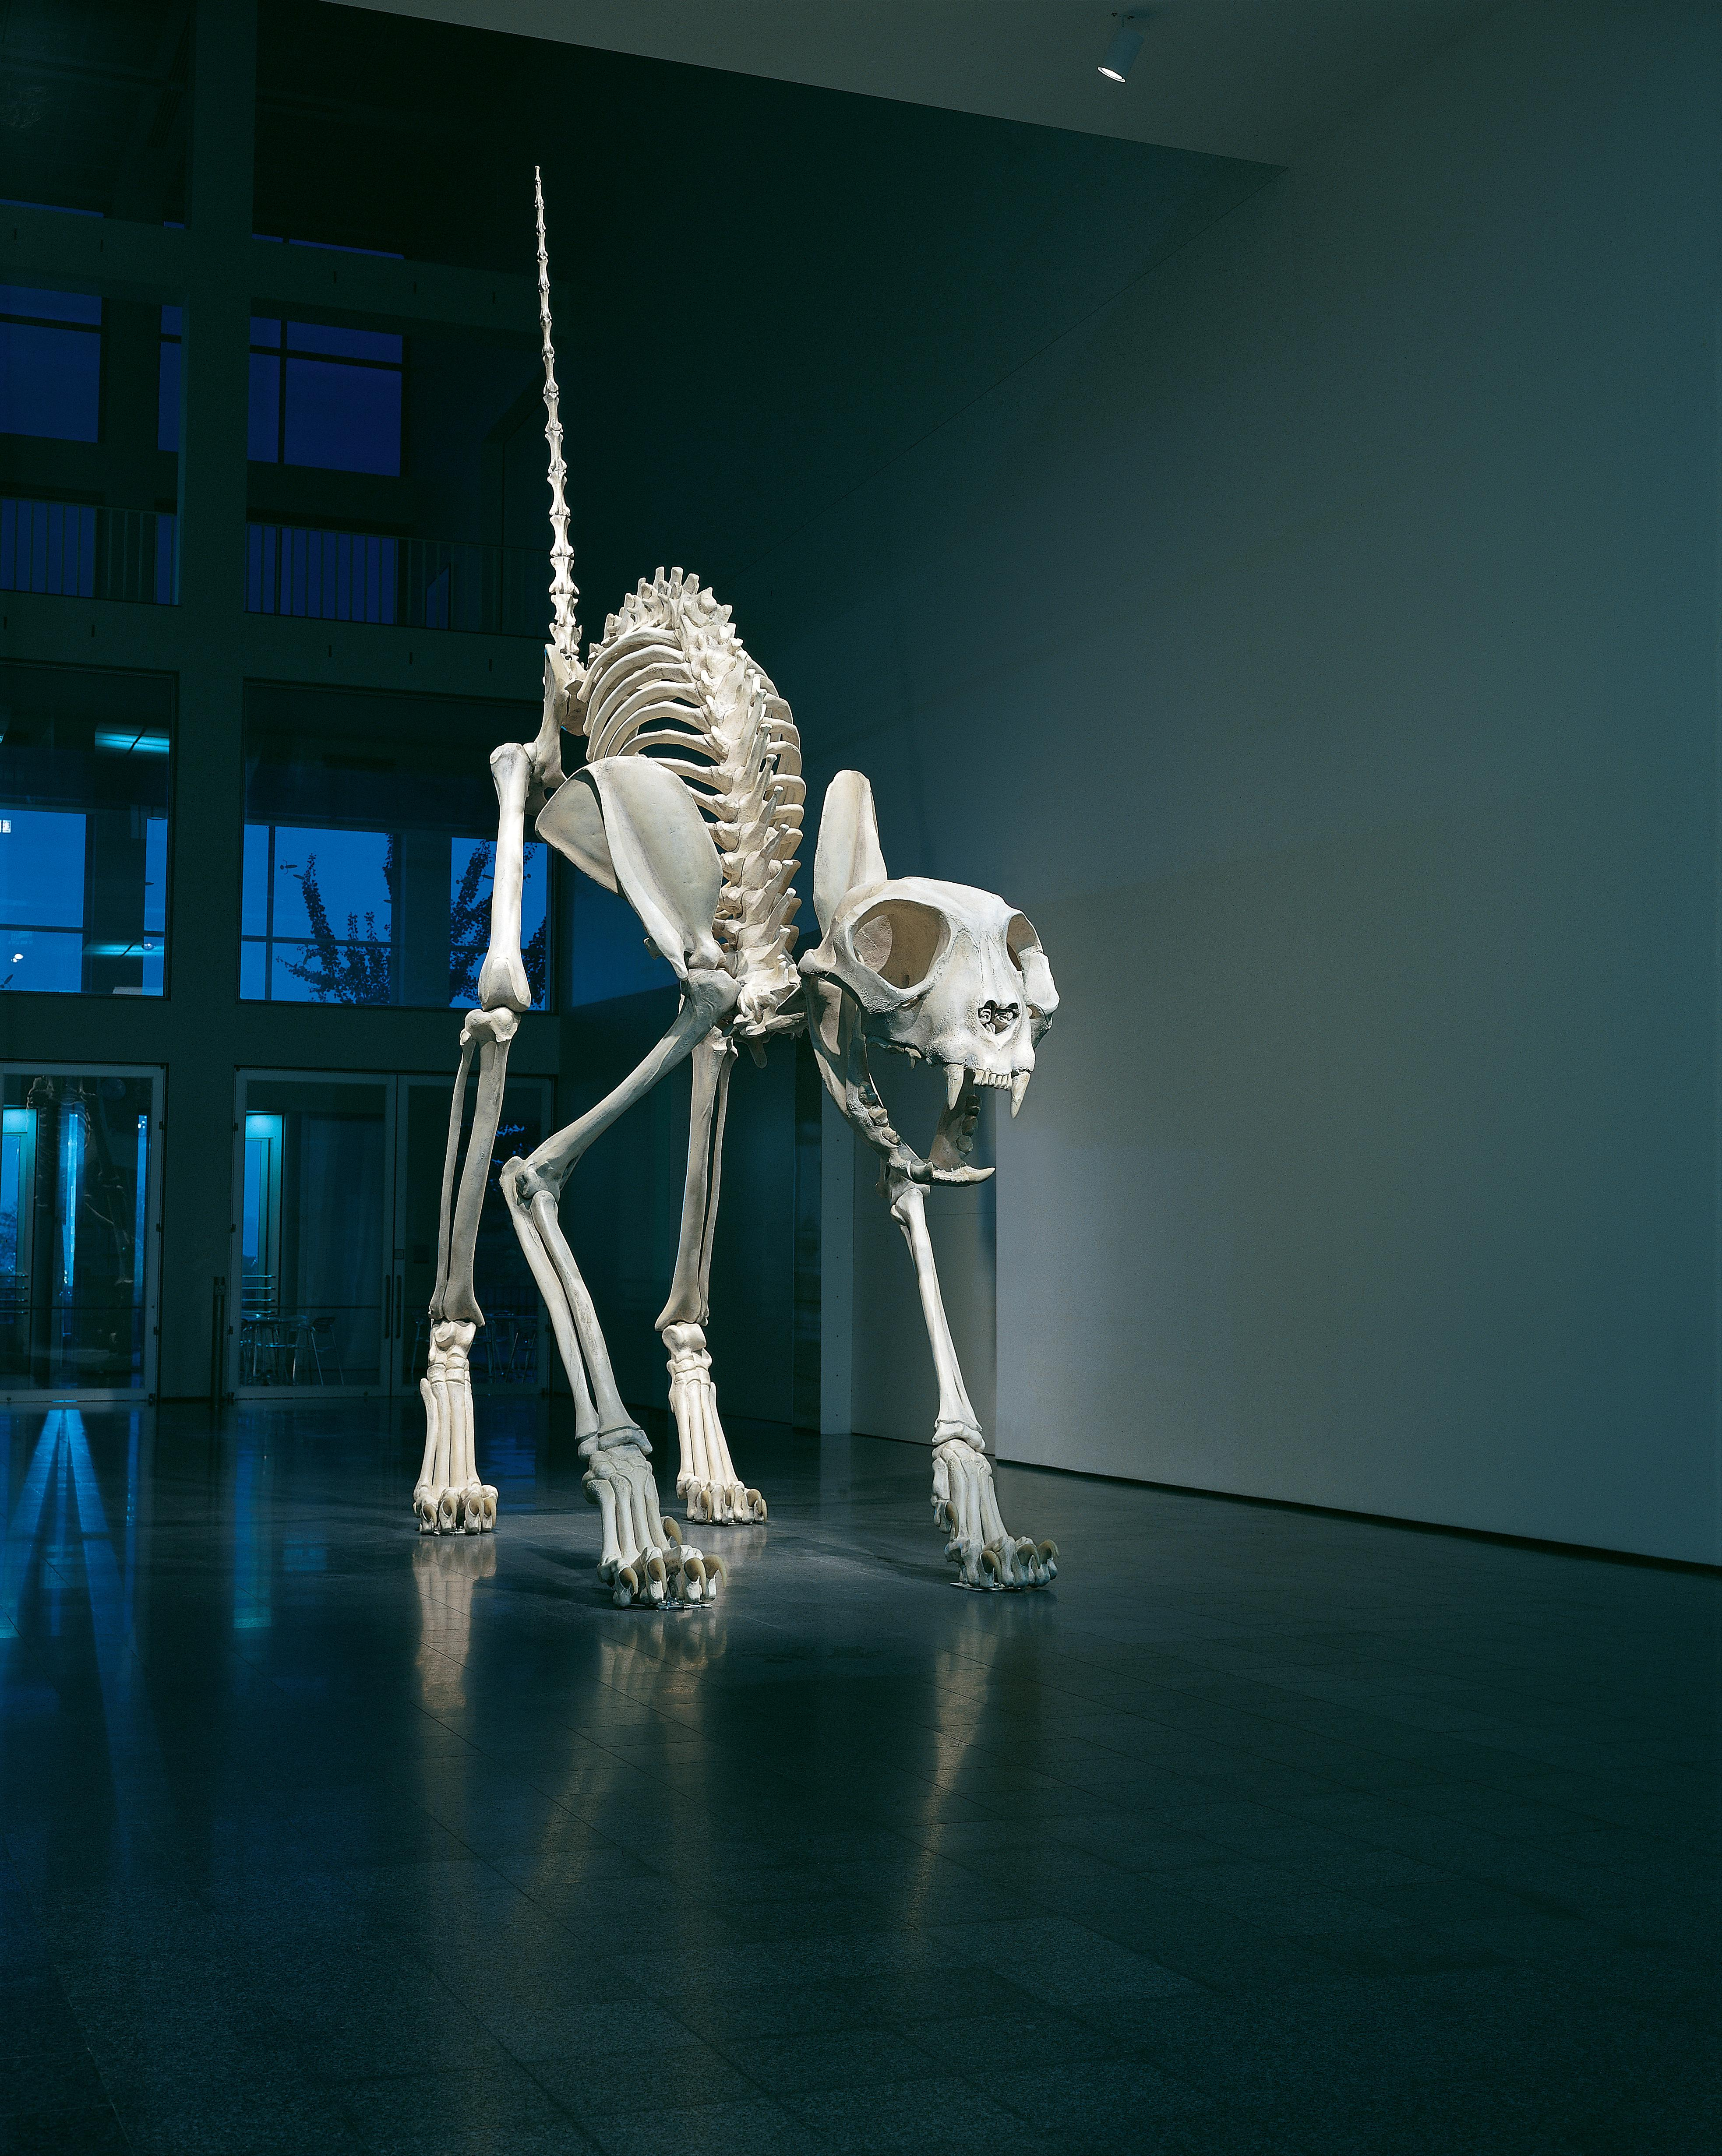 A gigantic cat skeleton stands in the center of a large atrium with its back arched and its tail pointed straight up in the air.